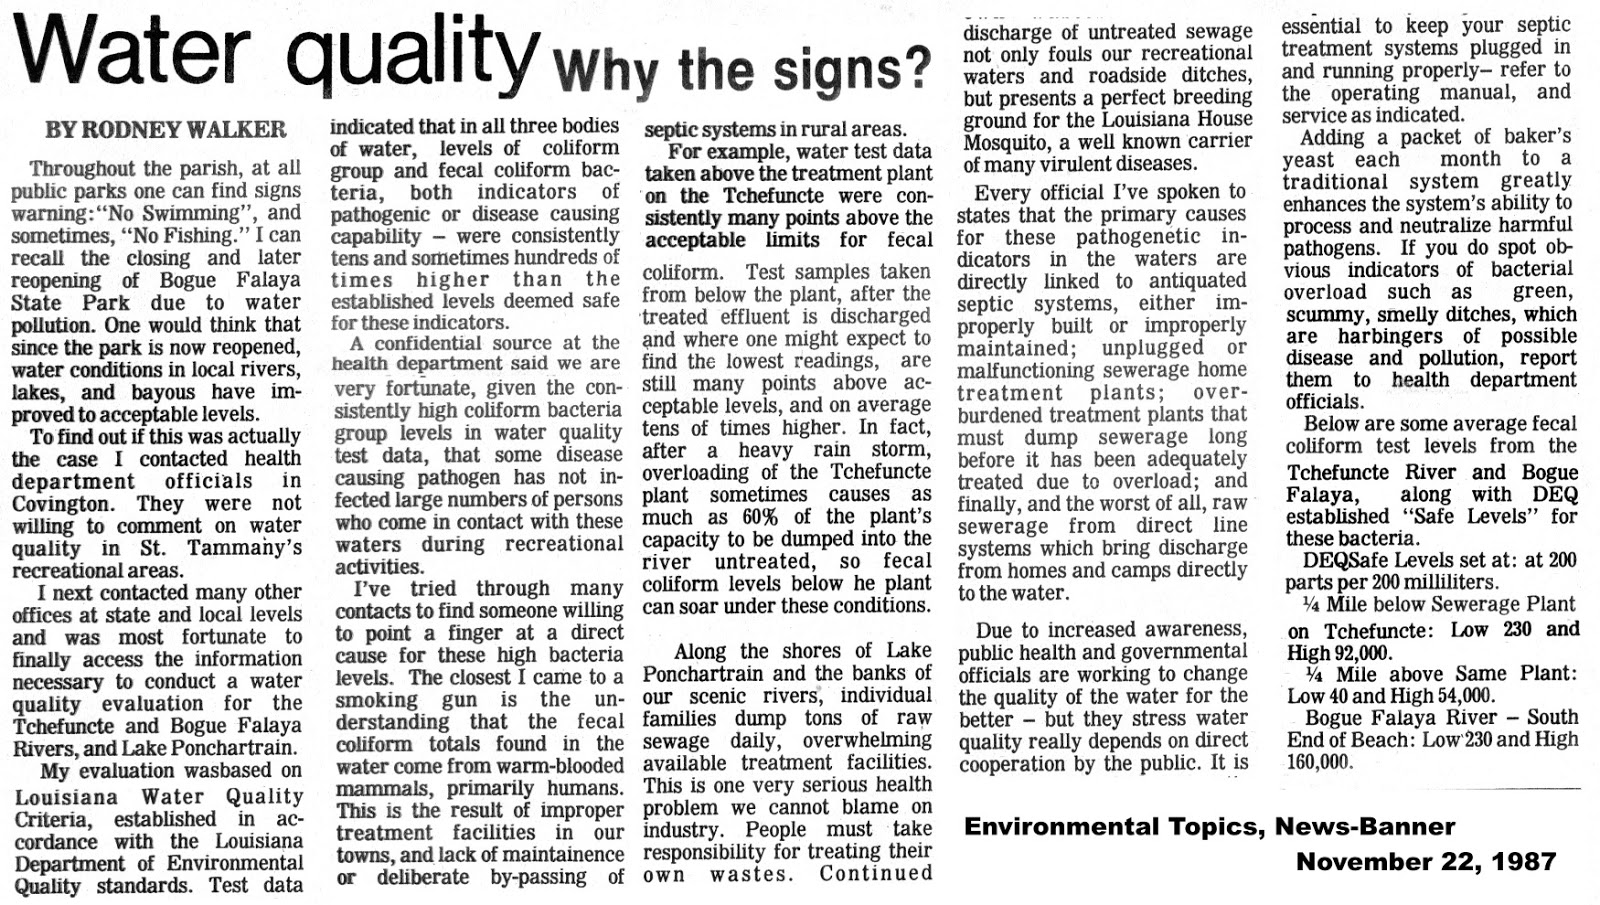 This Article About Water Quality Concerns In St Tammany Parish Appeared A 1987 Special Section On The Environment Published By